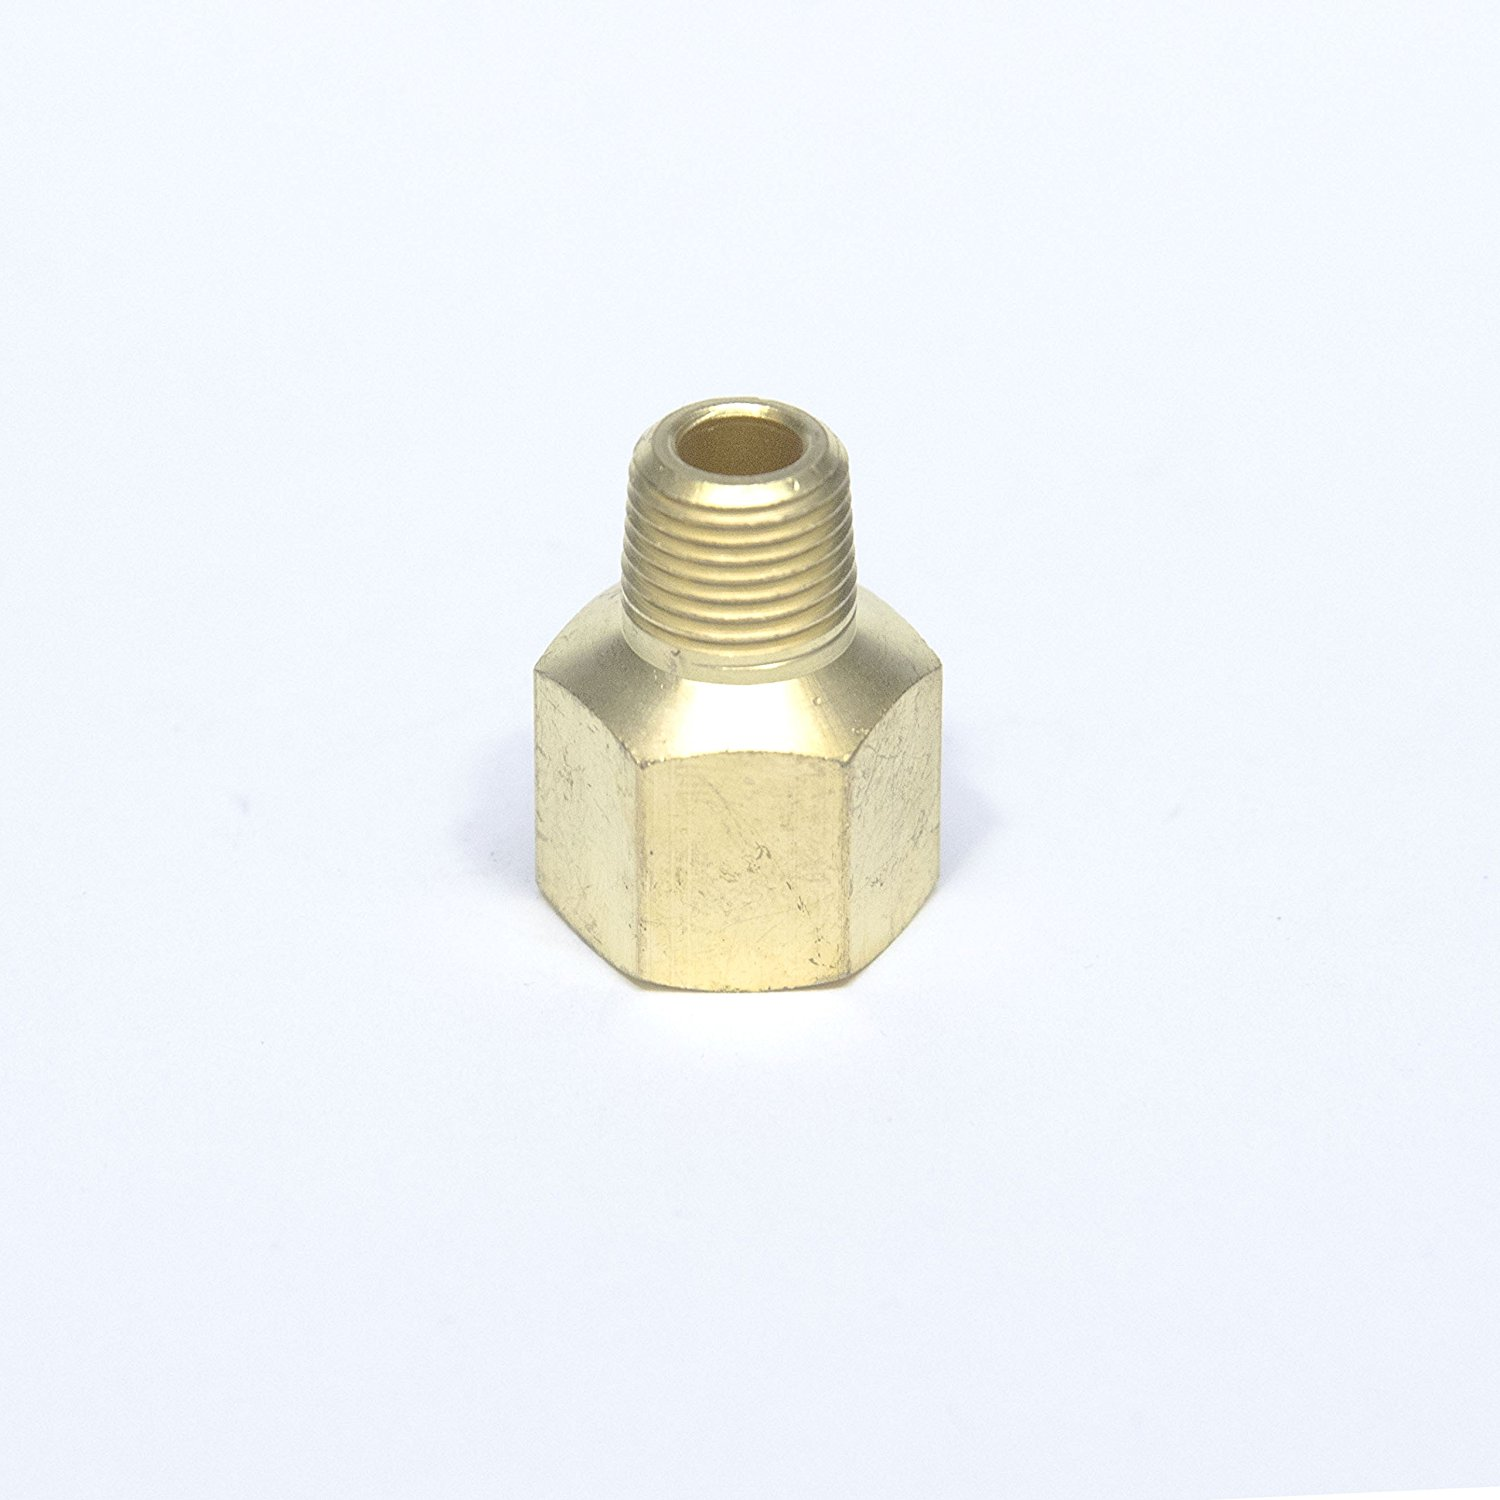 HPC Brass Pipe Adaptor Fitting Hearth Products Controls 443 1//2-Inch FIP to 1//2-Inch MIP